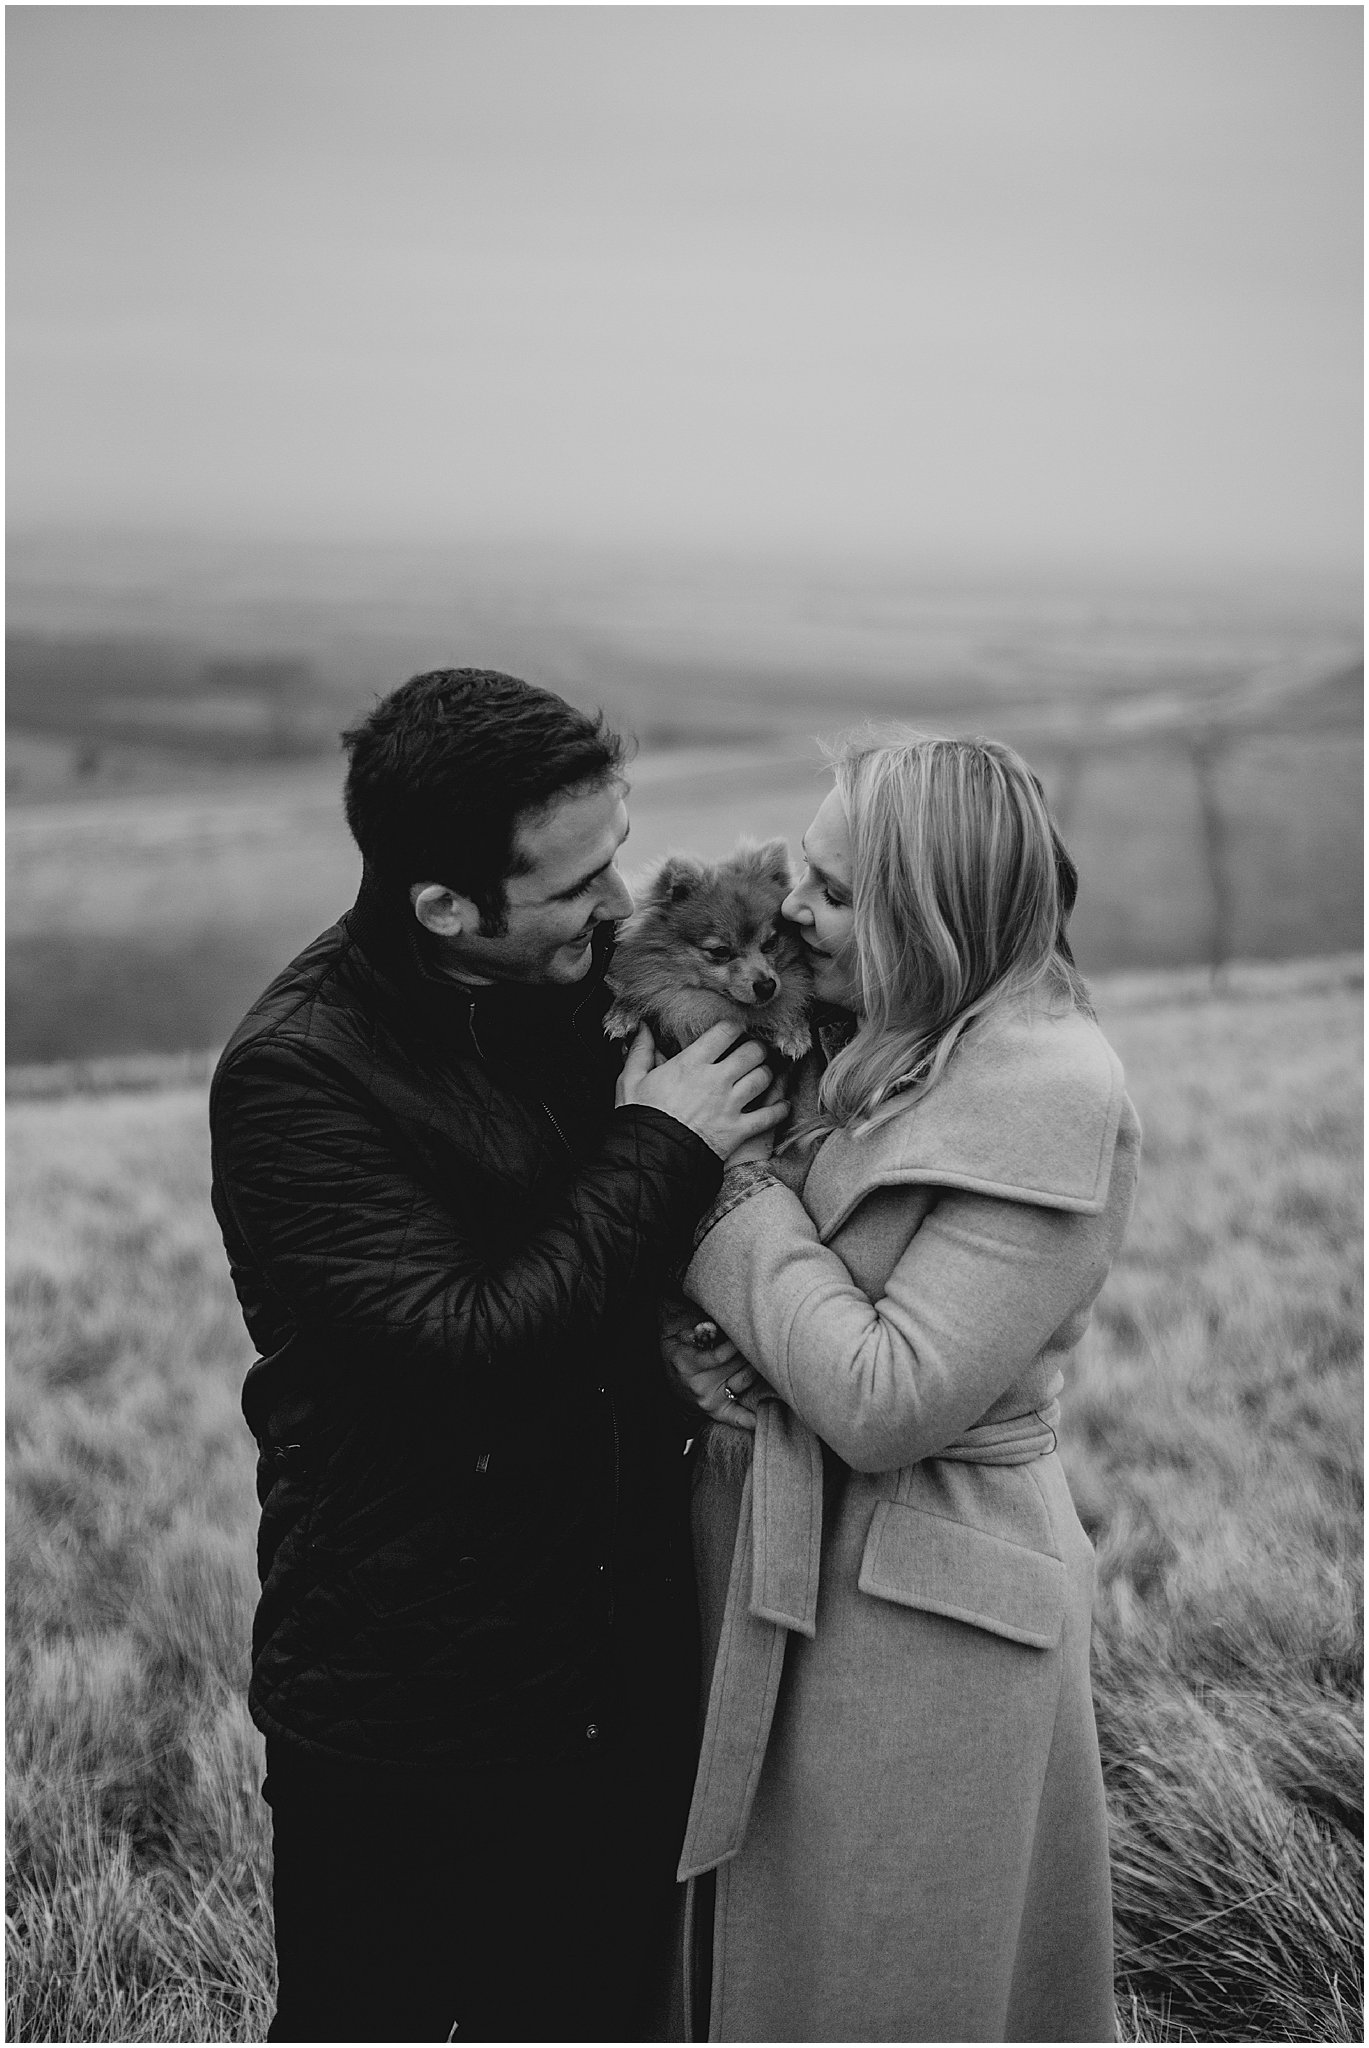 Mike & Charley_s Winter Engagement Shoot Wiltshire-15.jpg